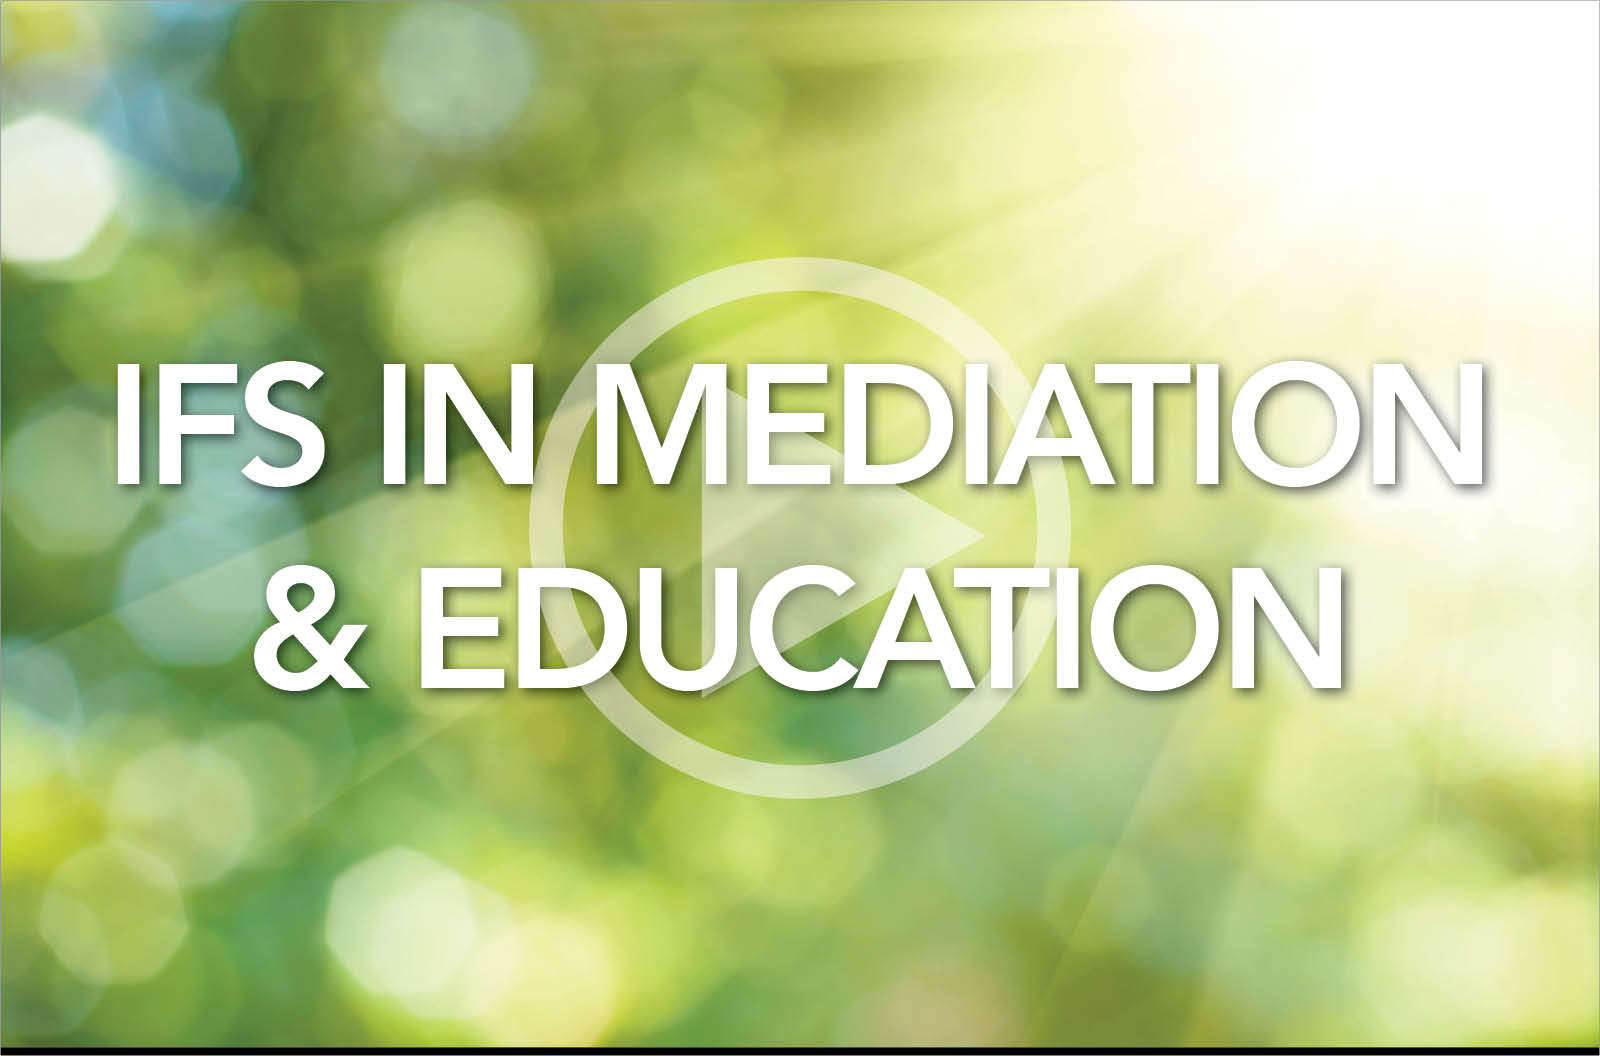 IFS in Mediation and Education